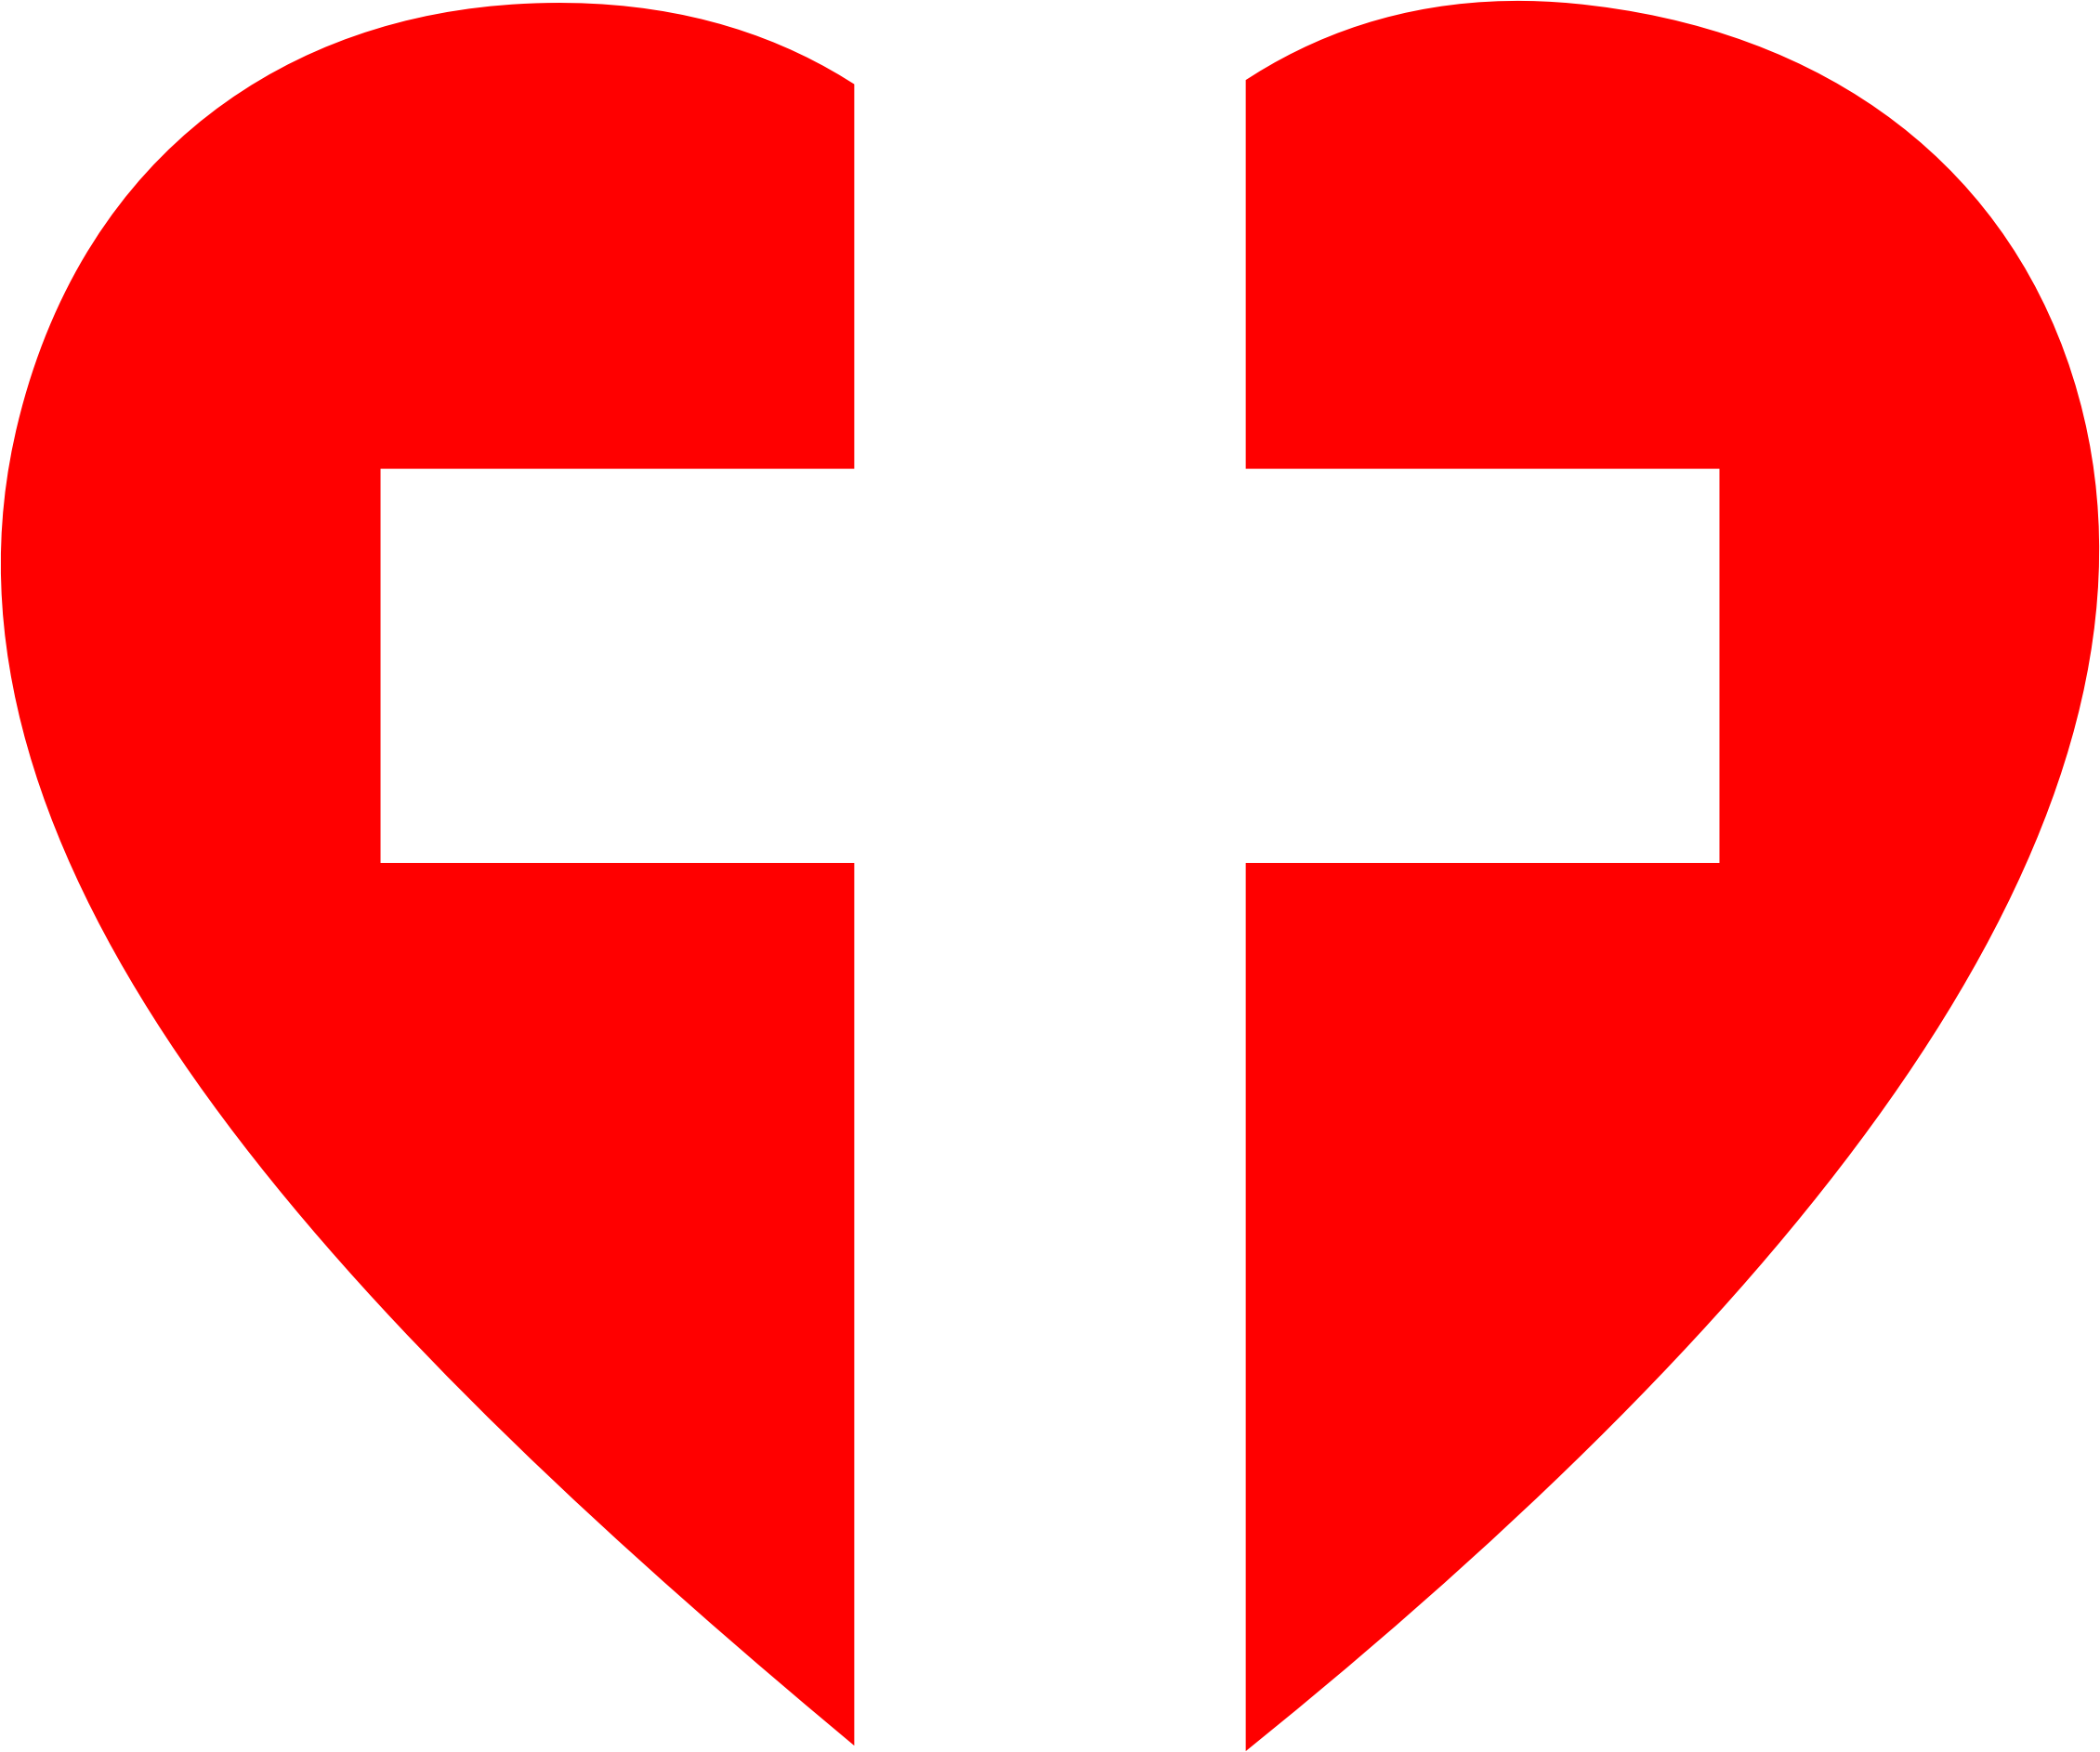 Cross for baptism clipart vector transparent stock Cross And Heart Clipart at GetDrawings.com | Free for personal use ... vector transparent stock